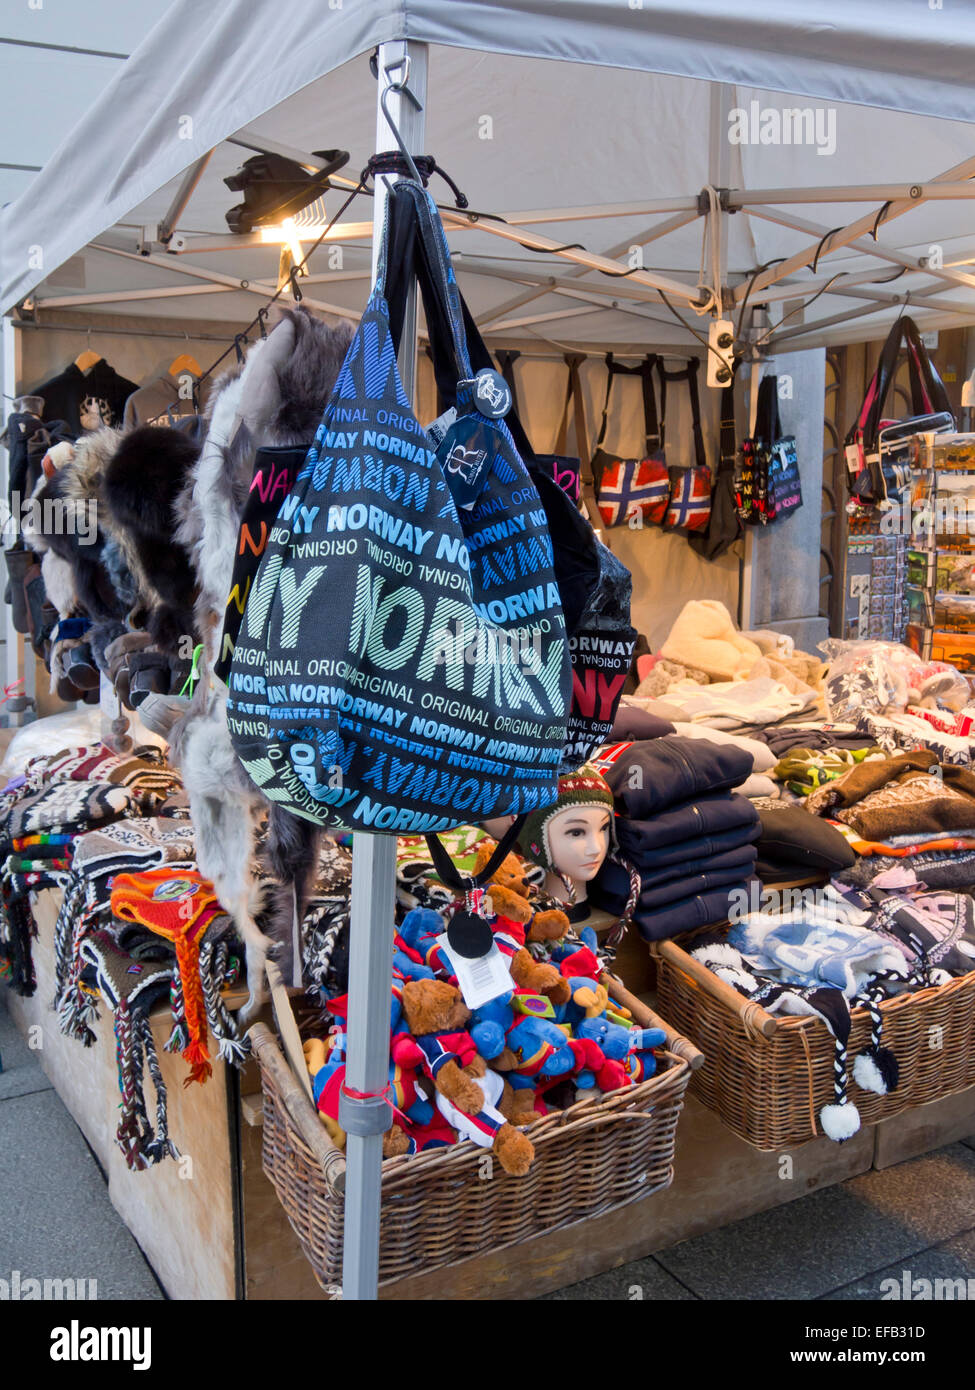 Blue touristy bag with Norway written in in many sizes, stall selling warm caps and souvenirs in Oslo - Stock Image